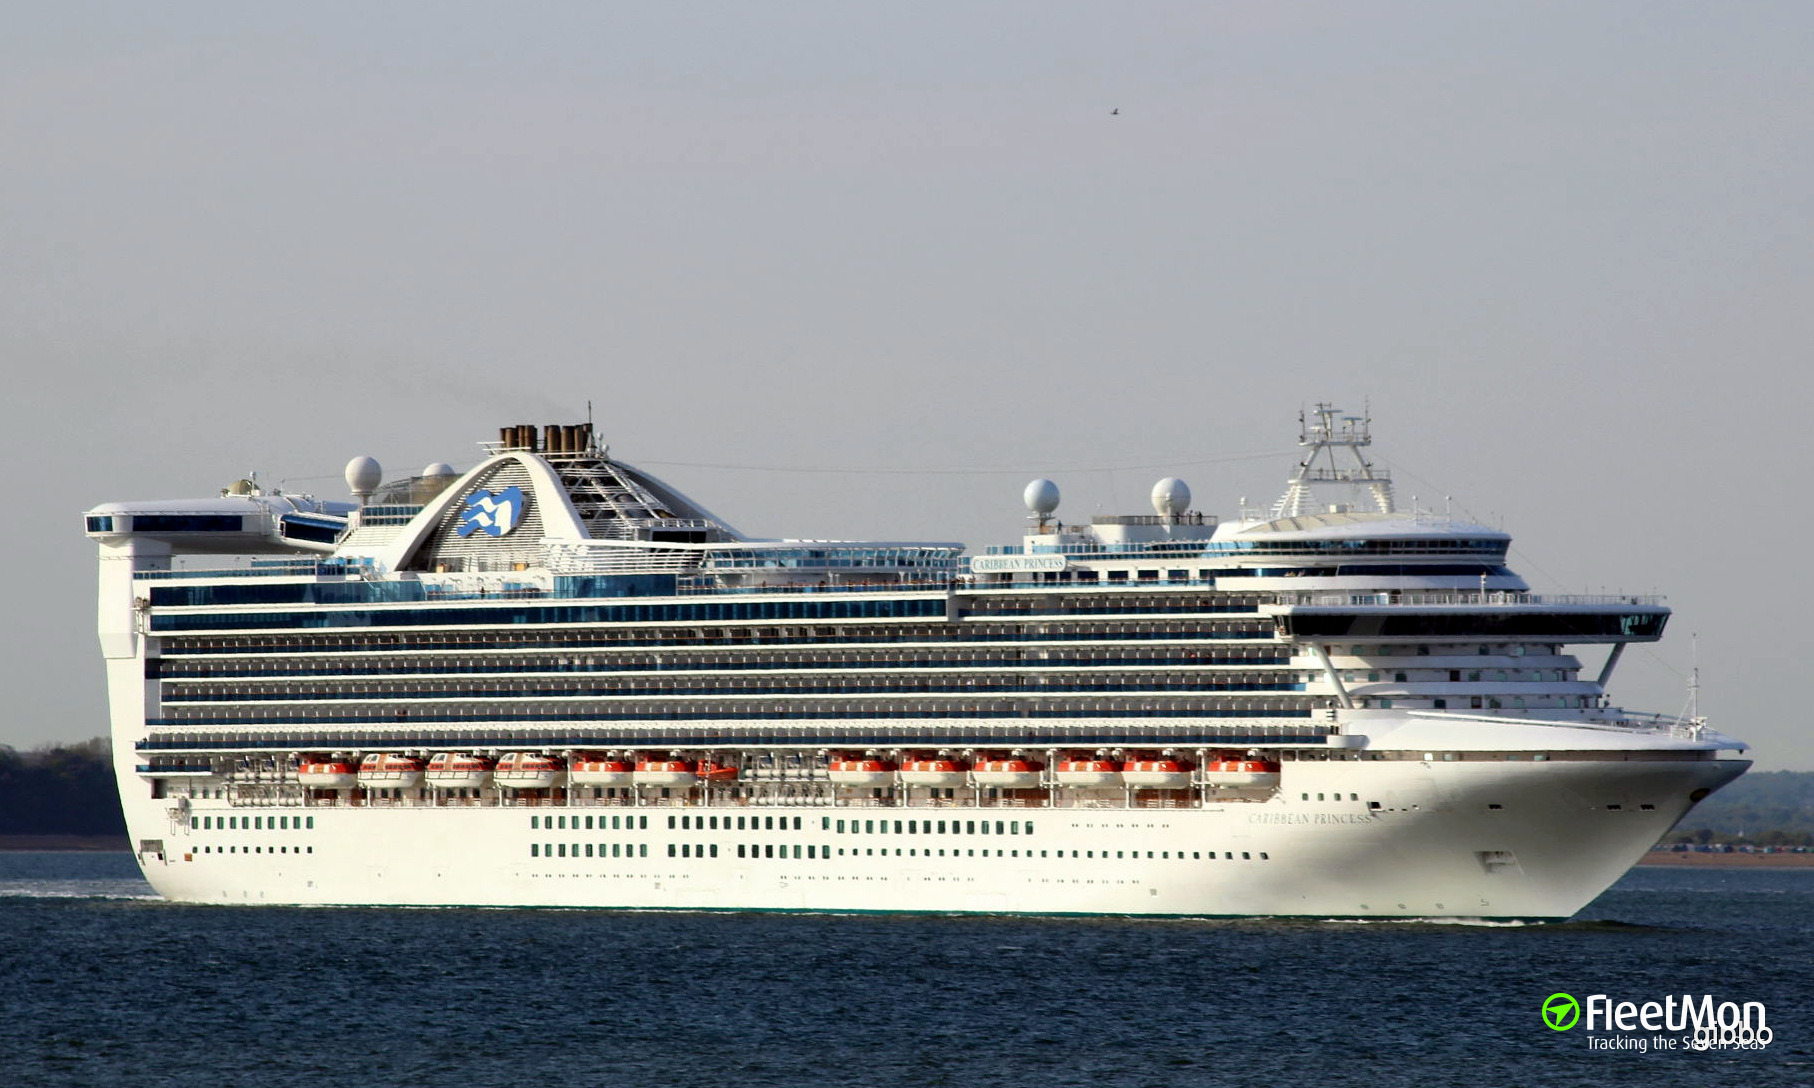 Ship CARIBBEAN PRINCESS Troubled In Irish Sea - Cruise ship caribbean